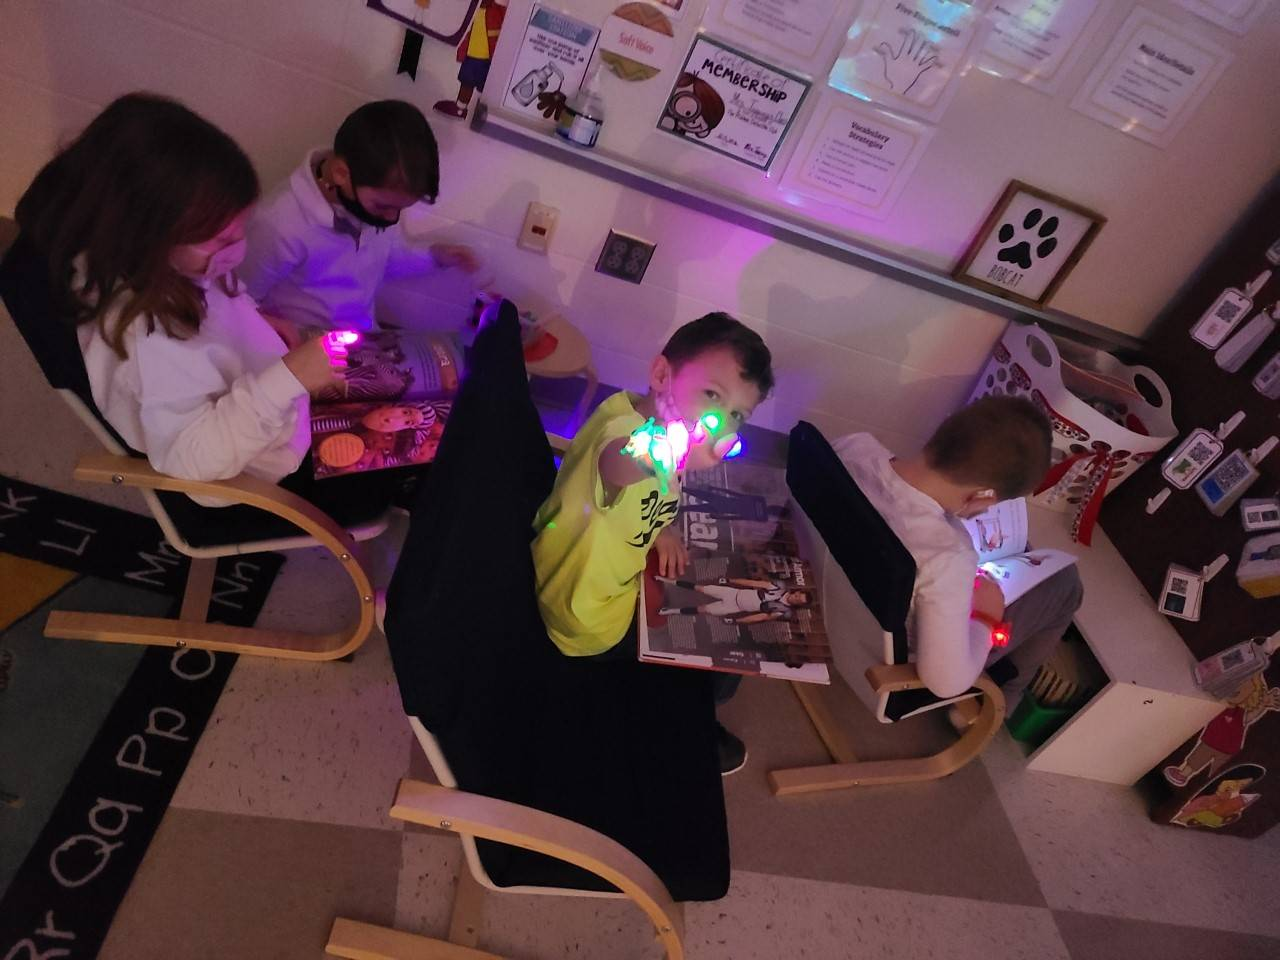 First grade students reading with finger lights